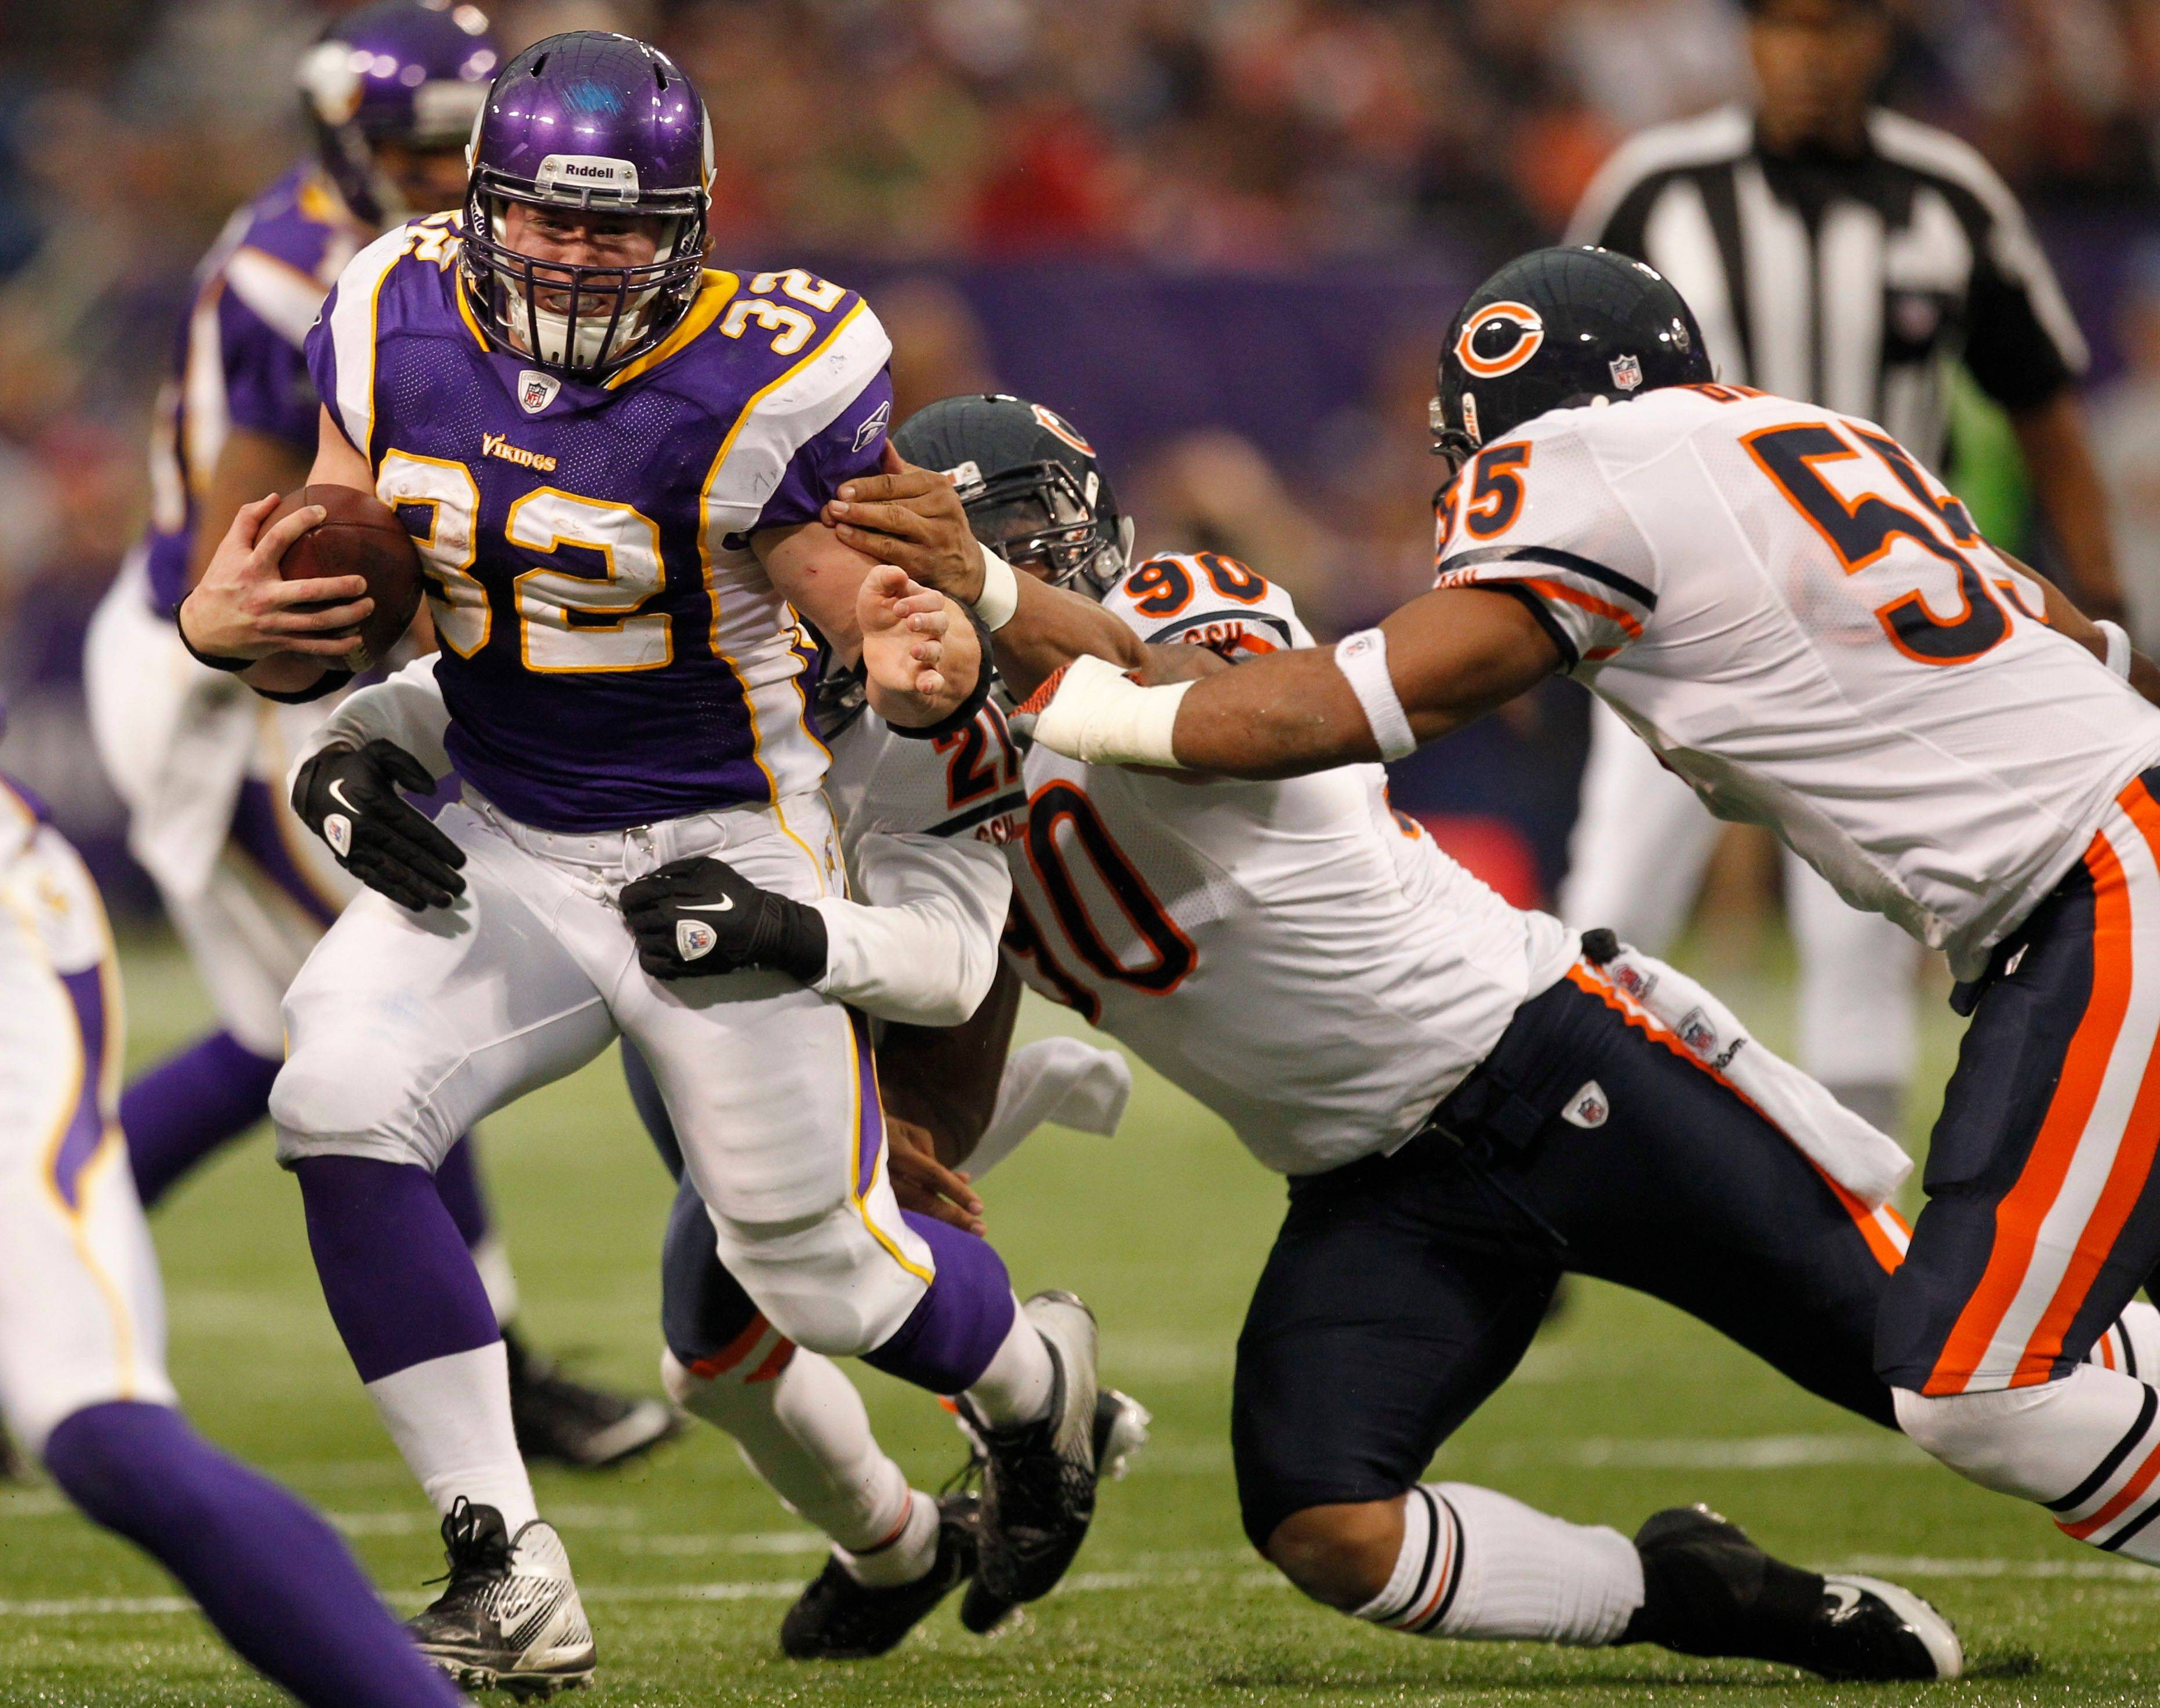 Minnesota Vikings running back Toby Gerhart gets tackled by Chicago Bears defensive back Corey Graham and defensive end Julius Peppers in the first half.